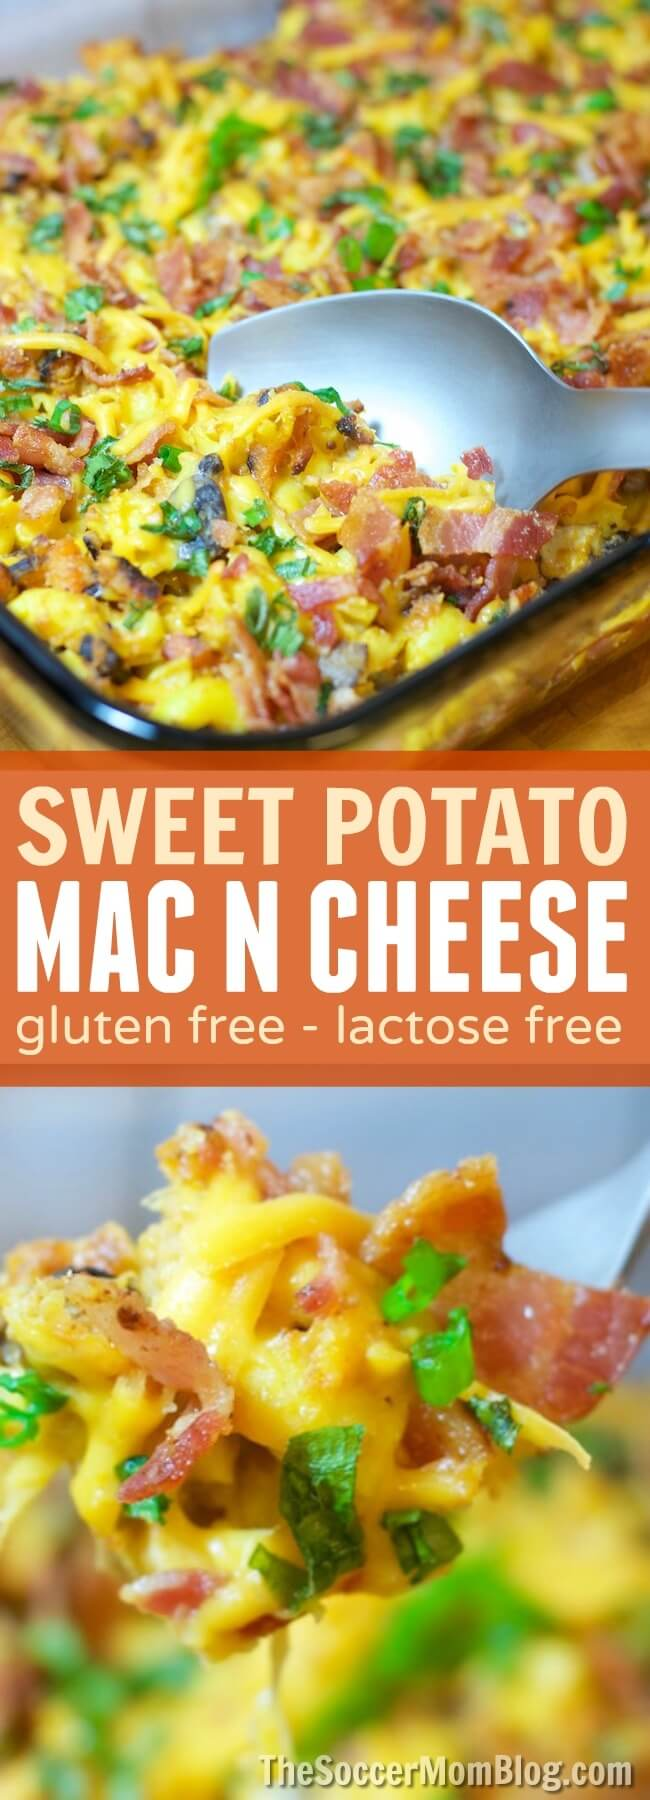 INSANELY delicious Sweet Potato Mac N Cheese is gluten free and lactose free!